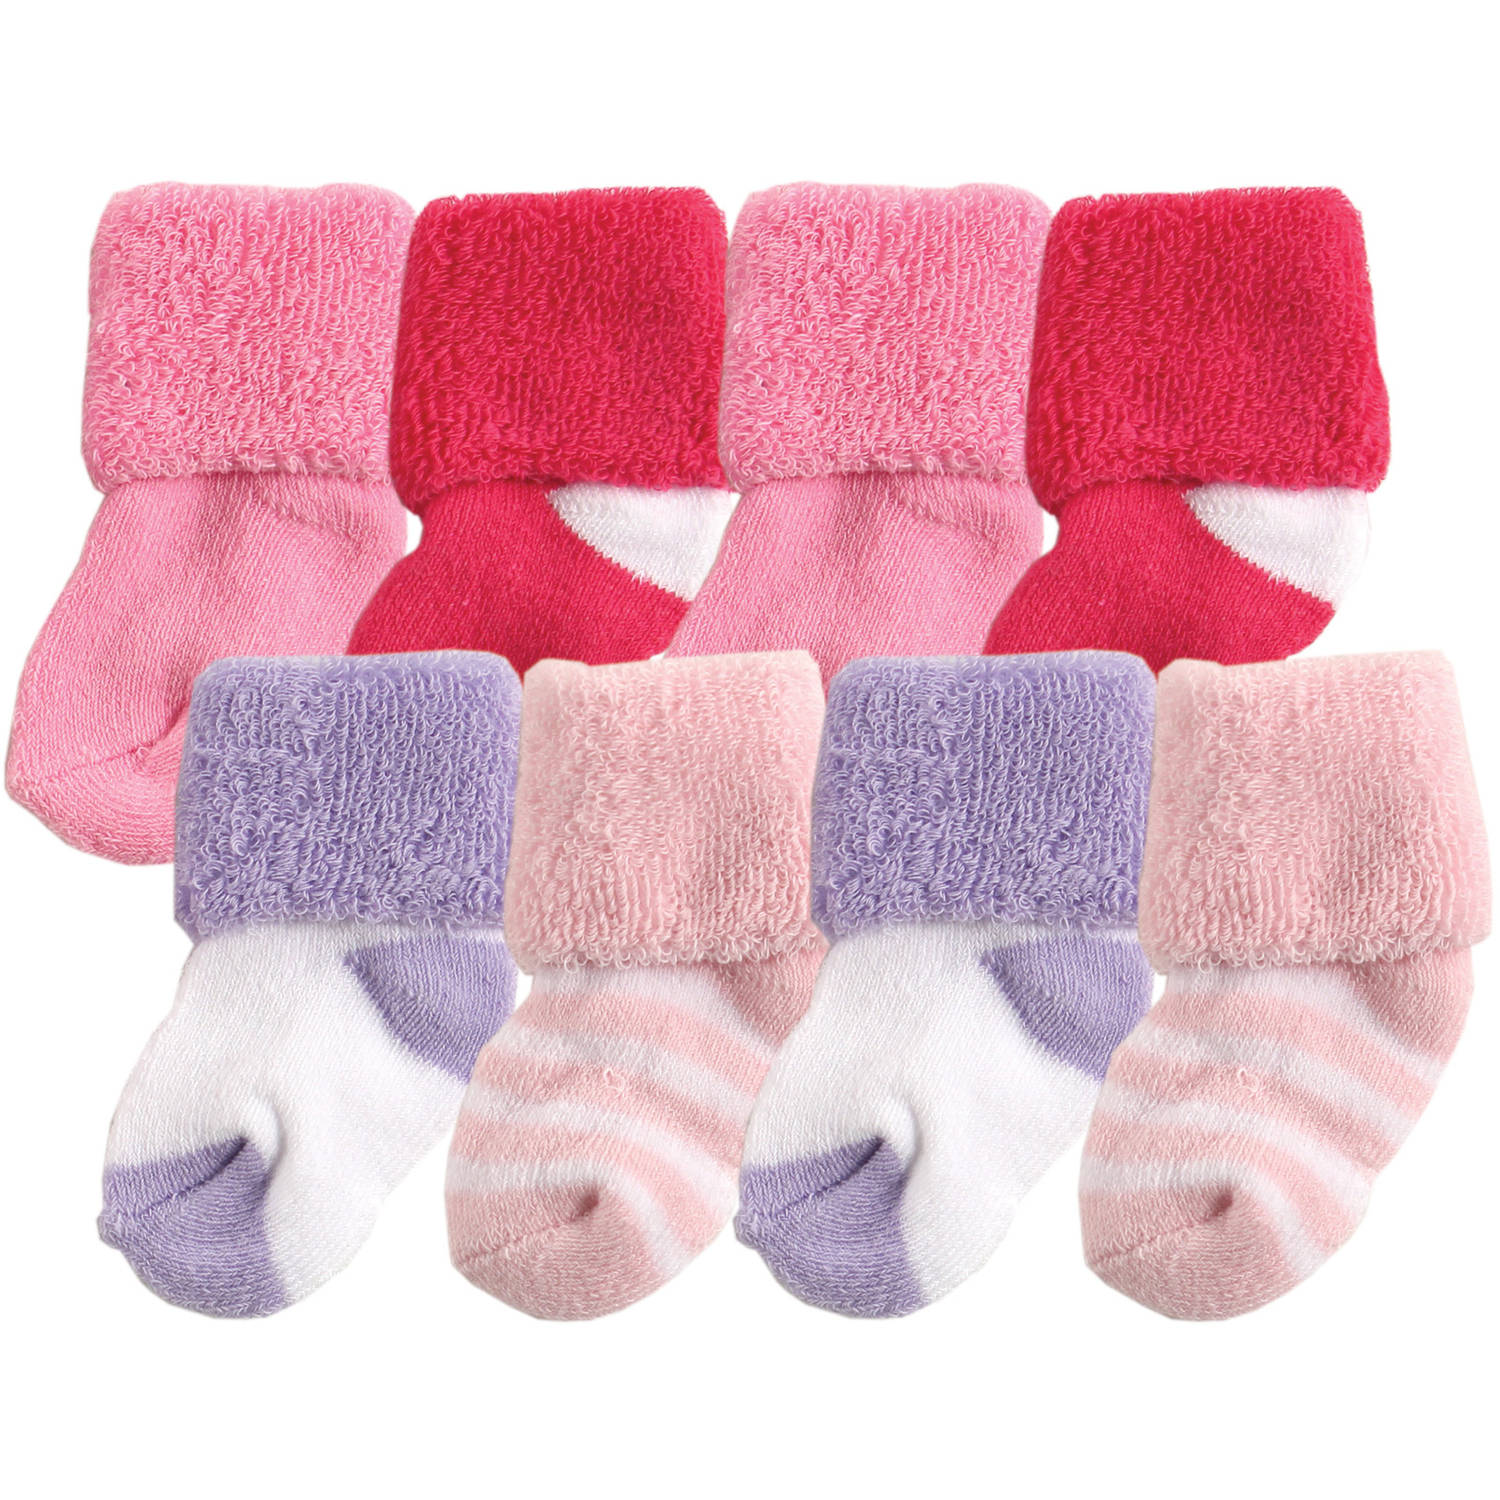 Luvable Friends Newborn Baby Girl Socks in Washbag 4-Pack